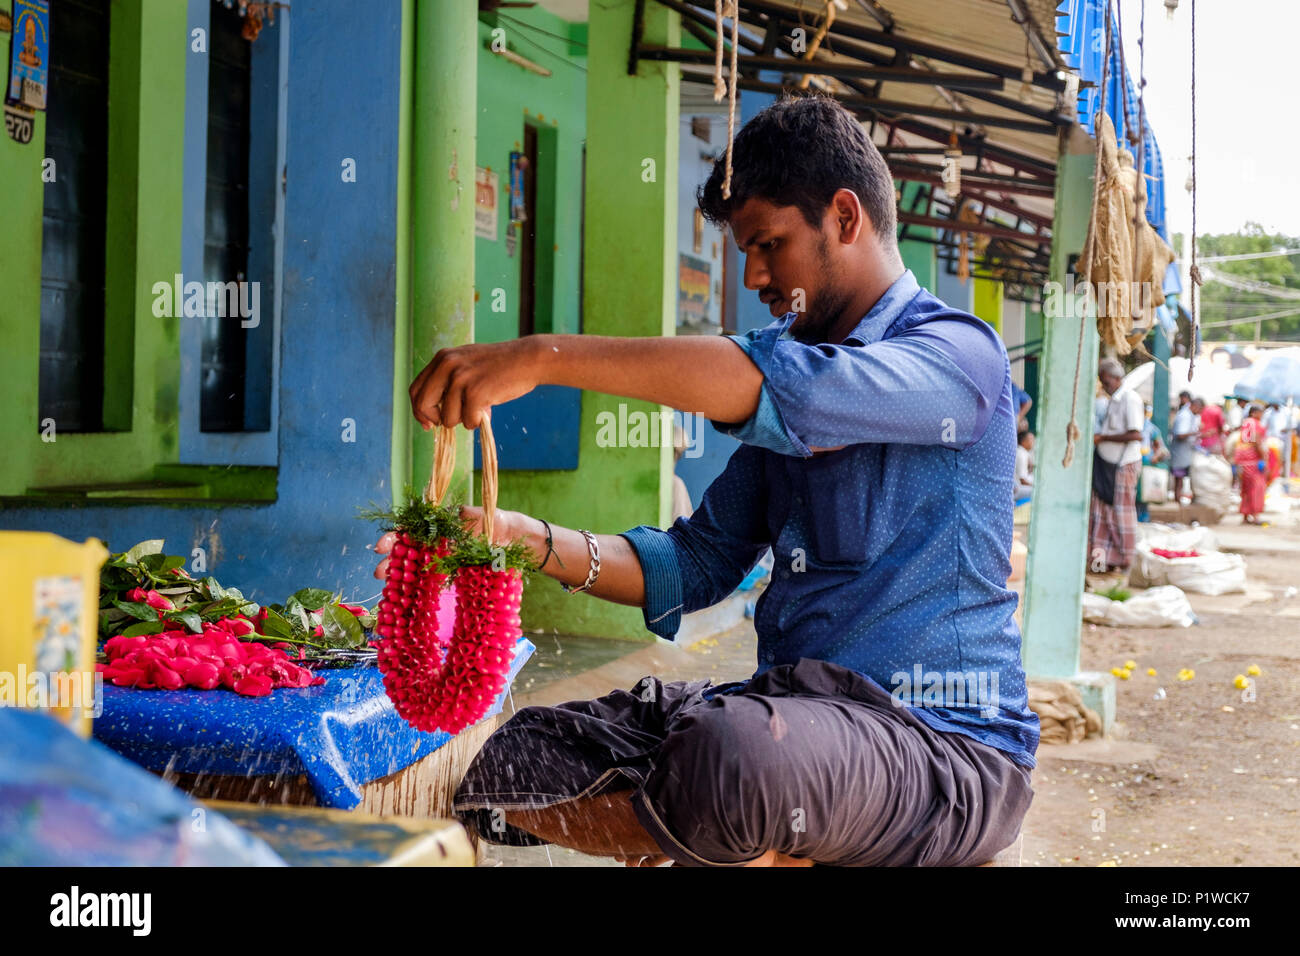 A young man making a flower garland, Madurai Flower market, Mattuthavani, Madurai District, Tamil Nadu, India. - Stock Image